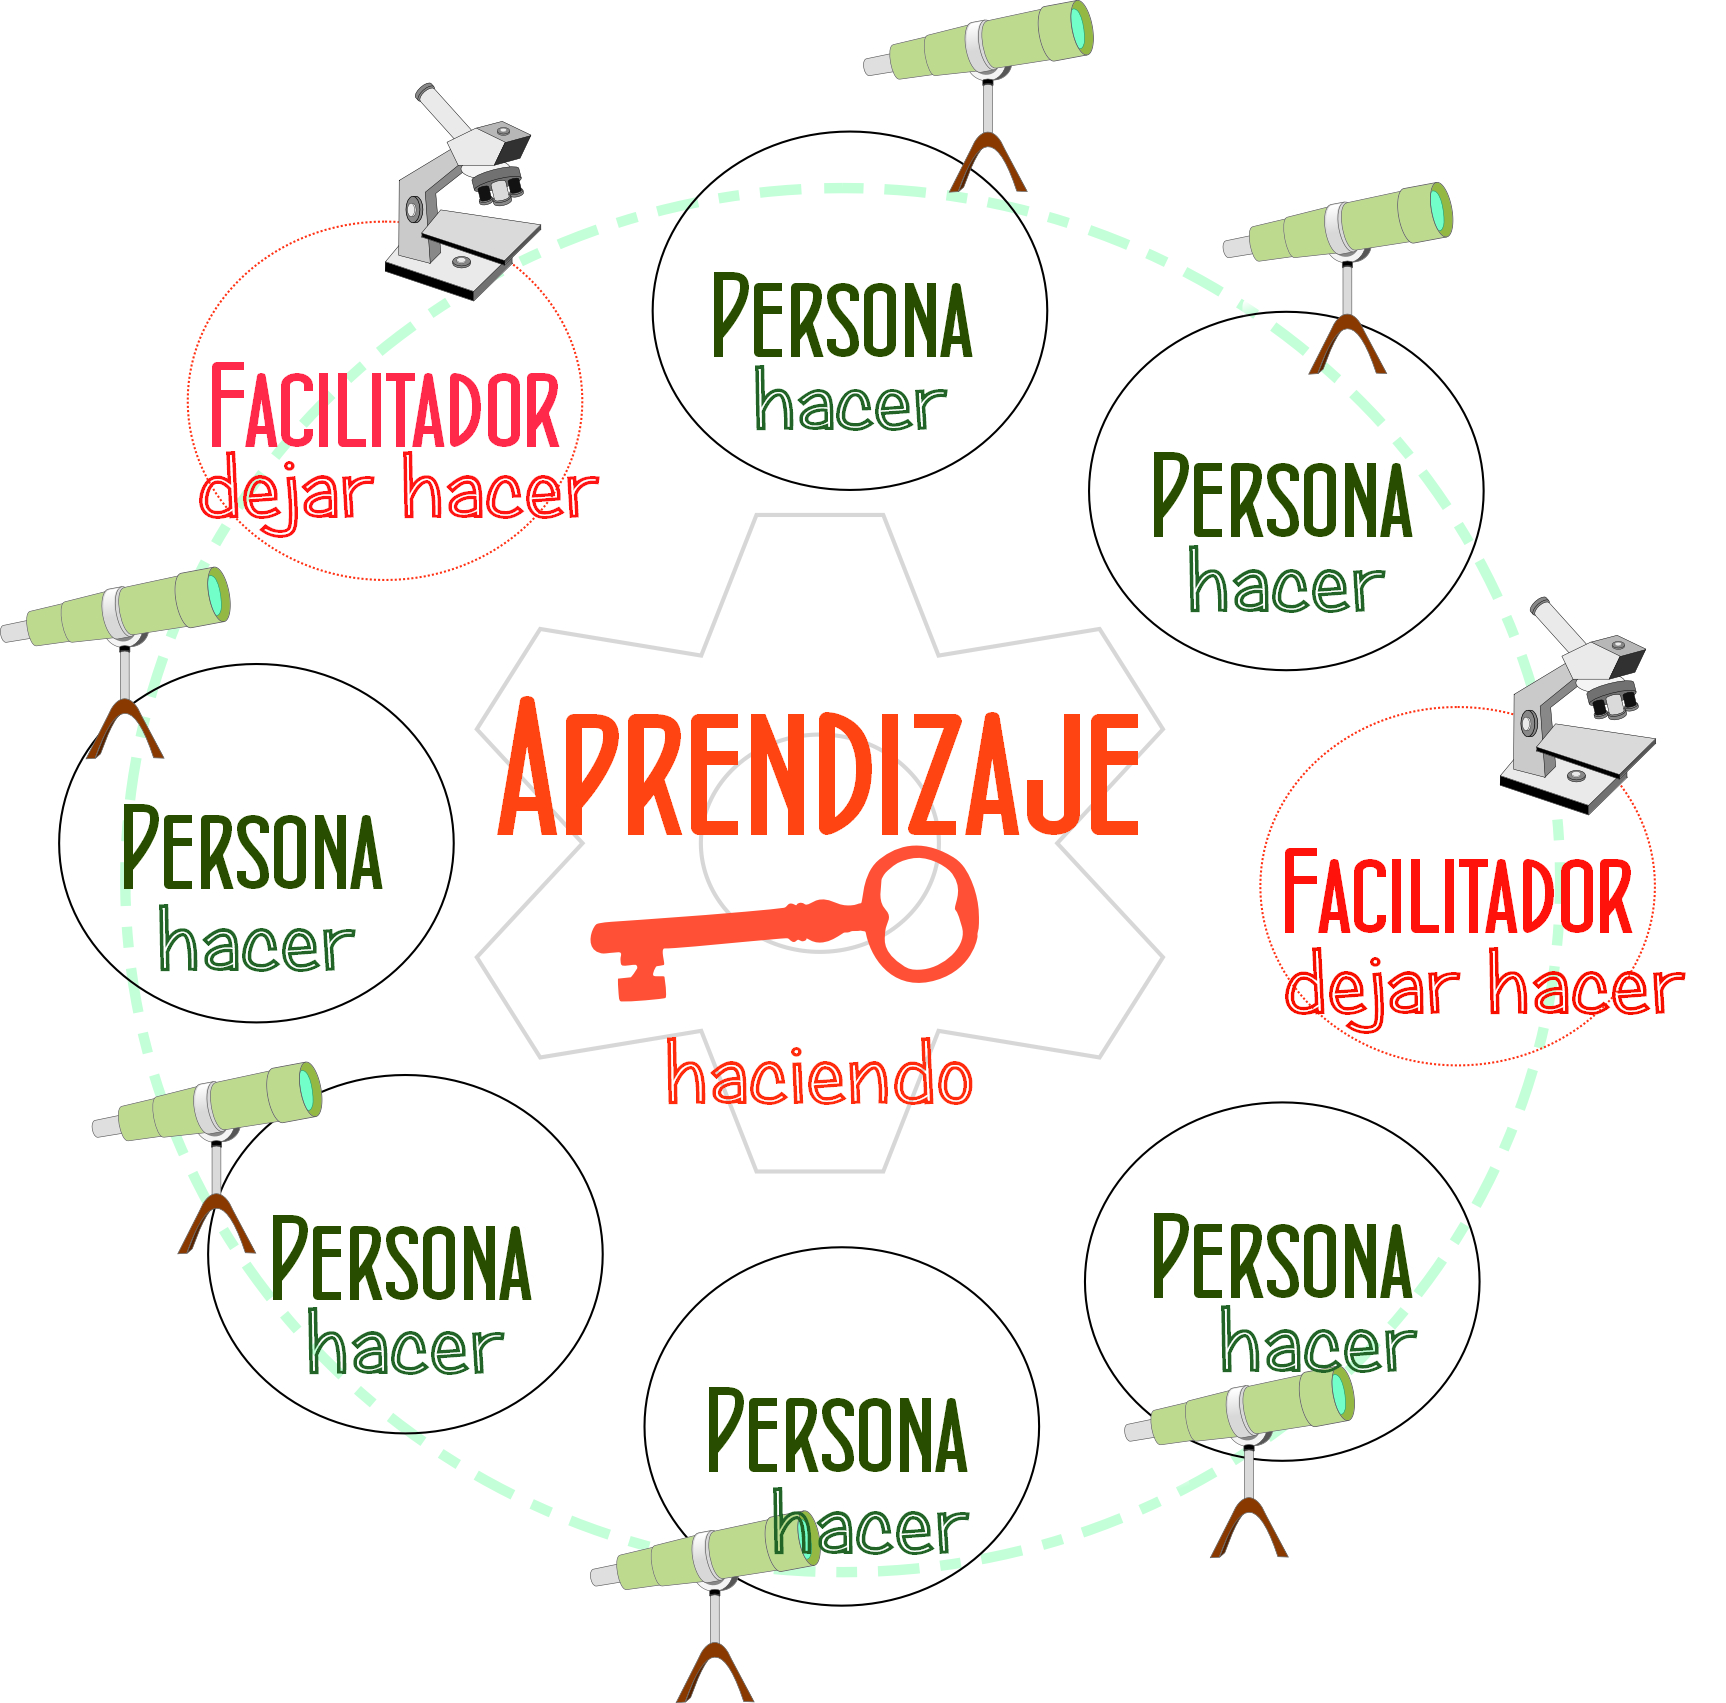 3 factores y perspectivas en FACILITACIÓN TOTAL